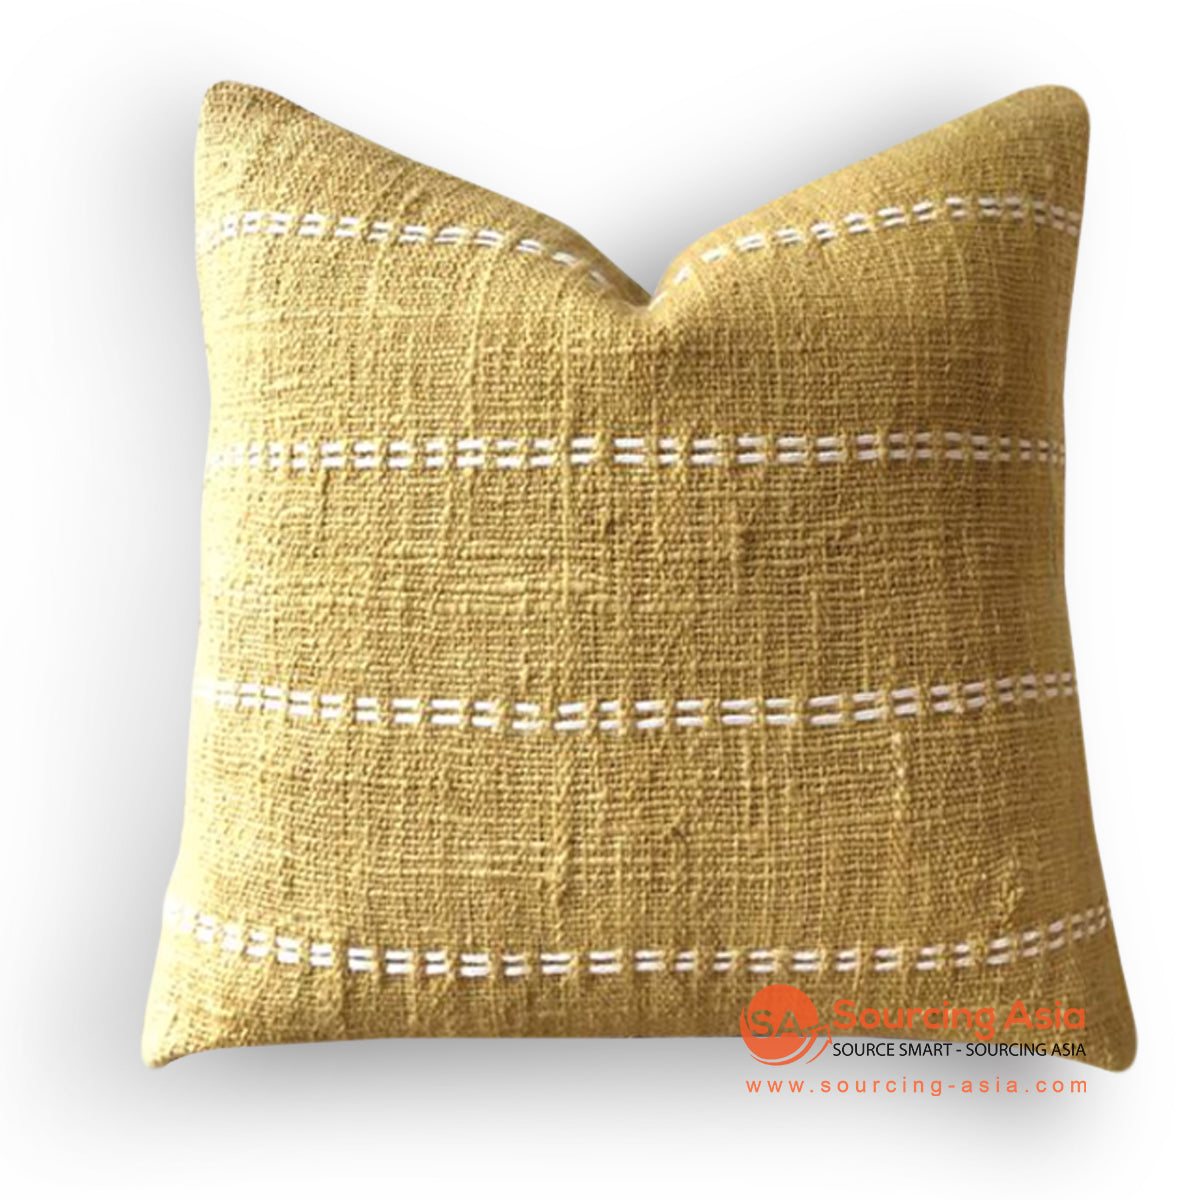 HIP021 HAND STITCHED COVER PILLOW WITH EMBROIDERY AND TASSELS 50 X 50 CM